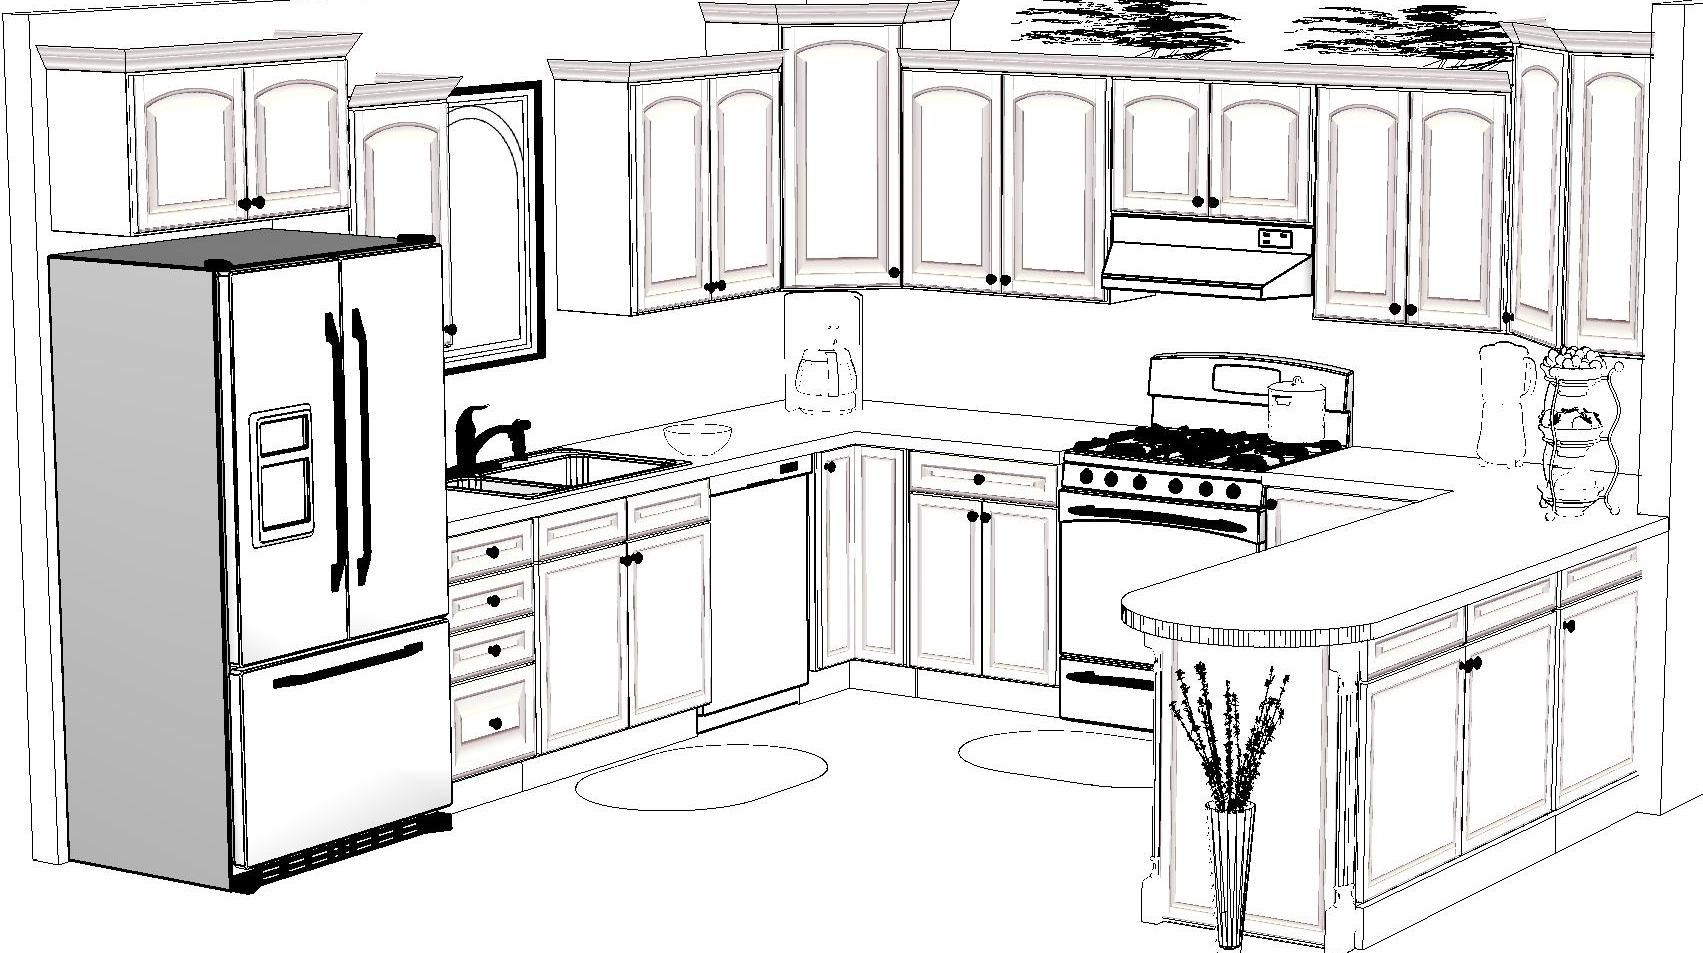 Kitchen Design Sketch Awesome 13988 02drawing Inspirations Pinterest Sketches Kitchens